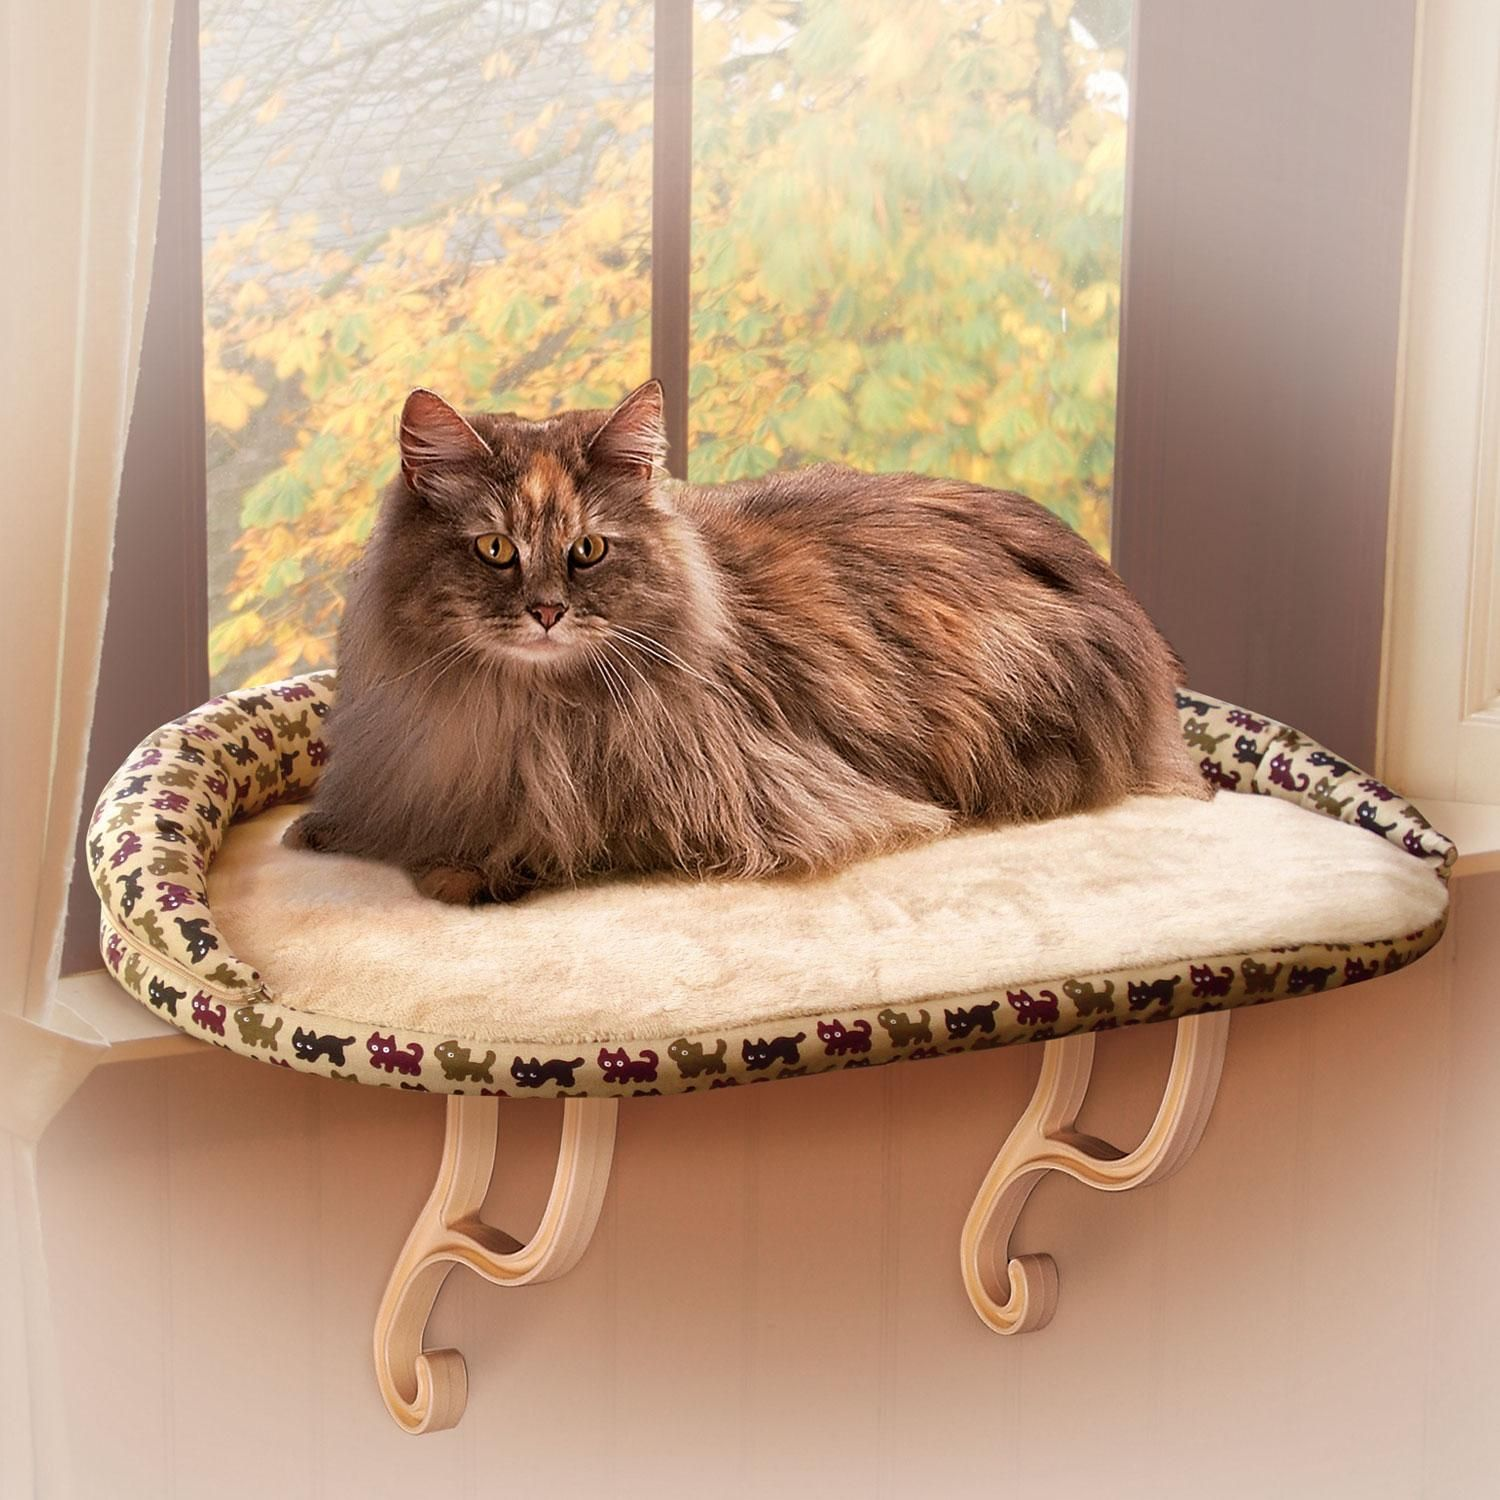 k kitty sill bolster deluxe cat window perch cat perches. Black Bedroom Furniture Sets. Home Design Ideas